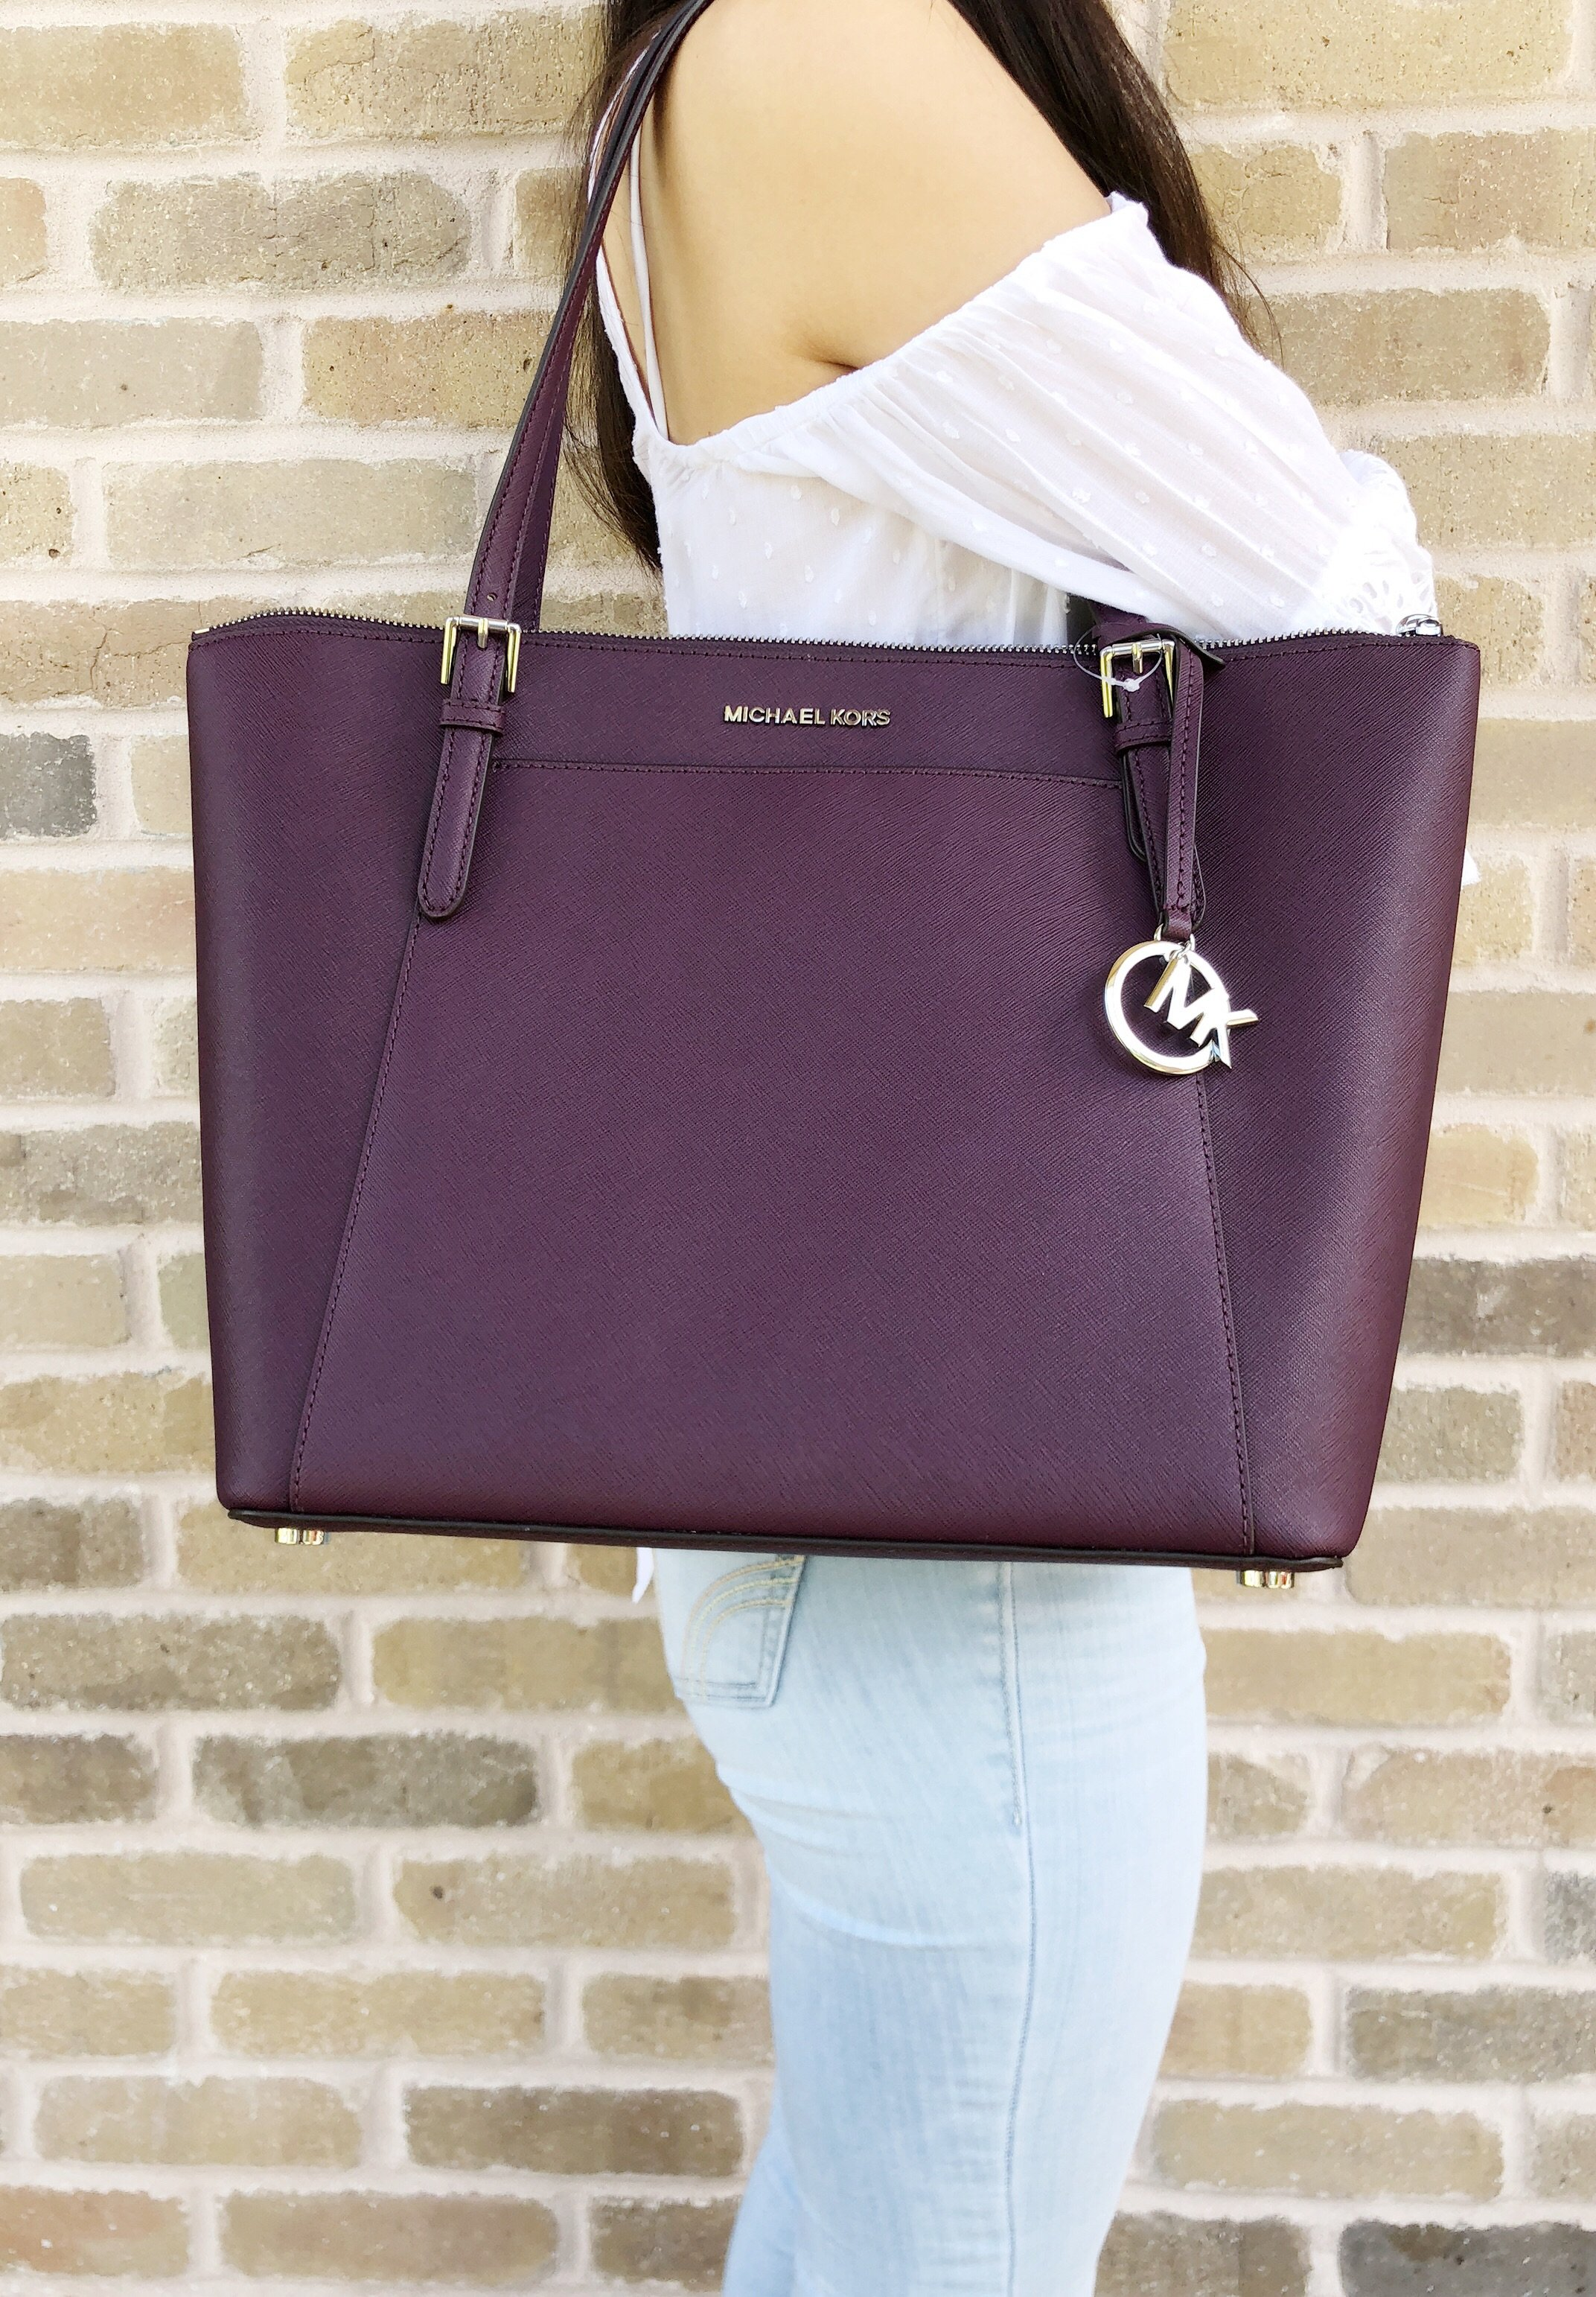 9e768a9fedf1 Michael Kors Ciara Large East West Top Zip Tote Damson Purple Saffiano # Handbags #MichaelKors #MK